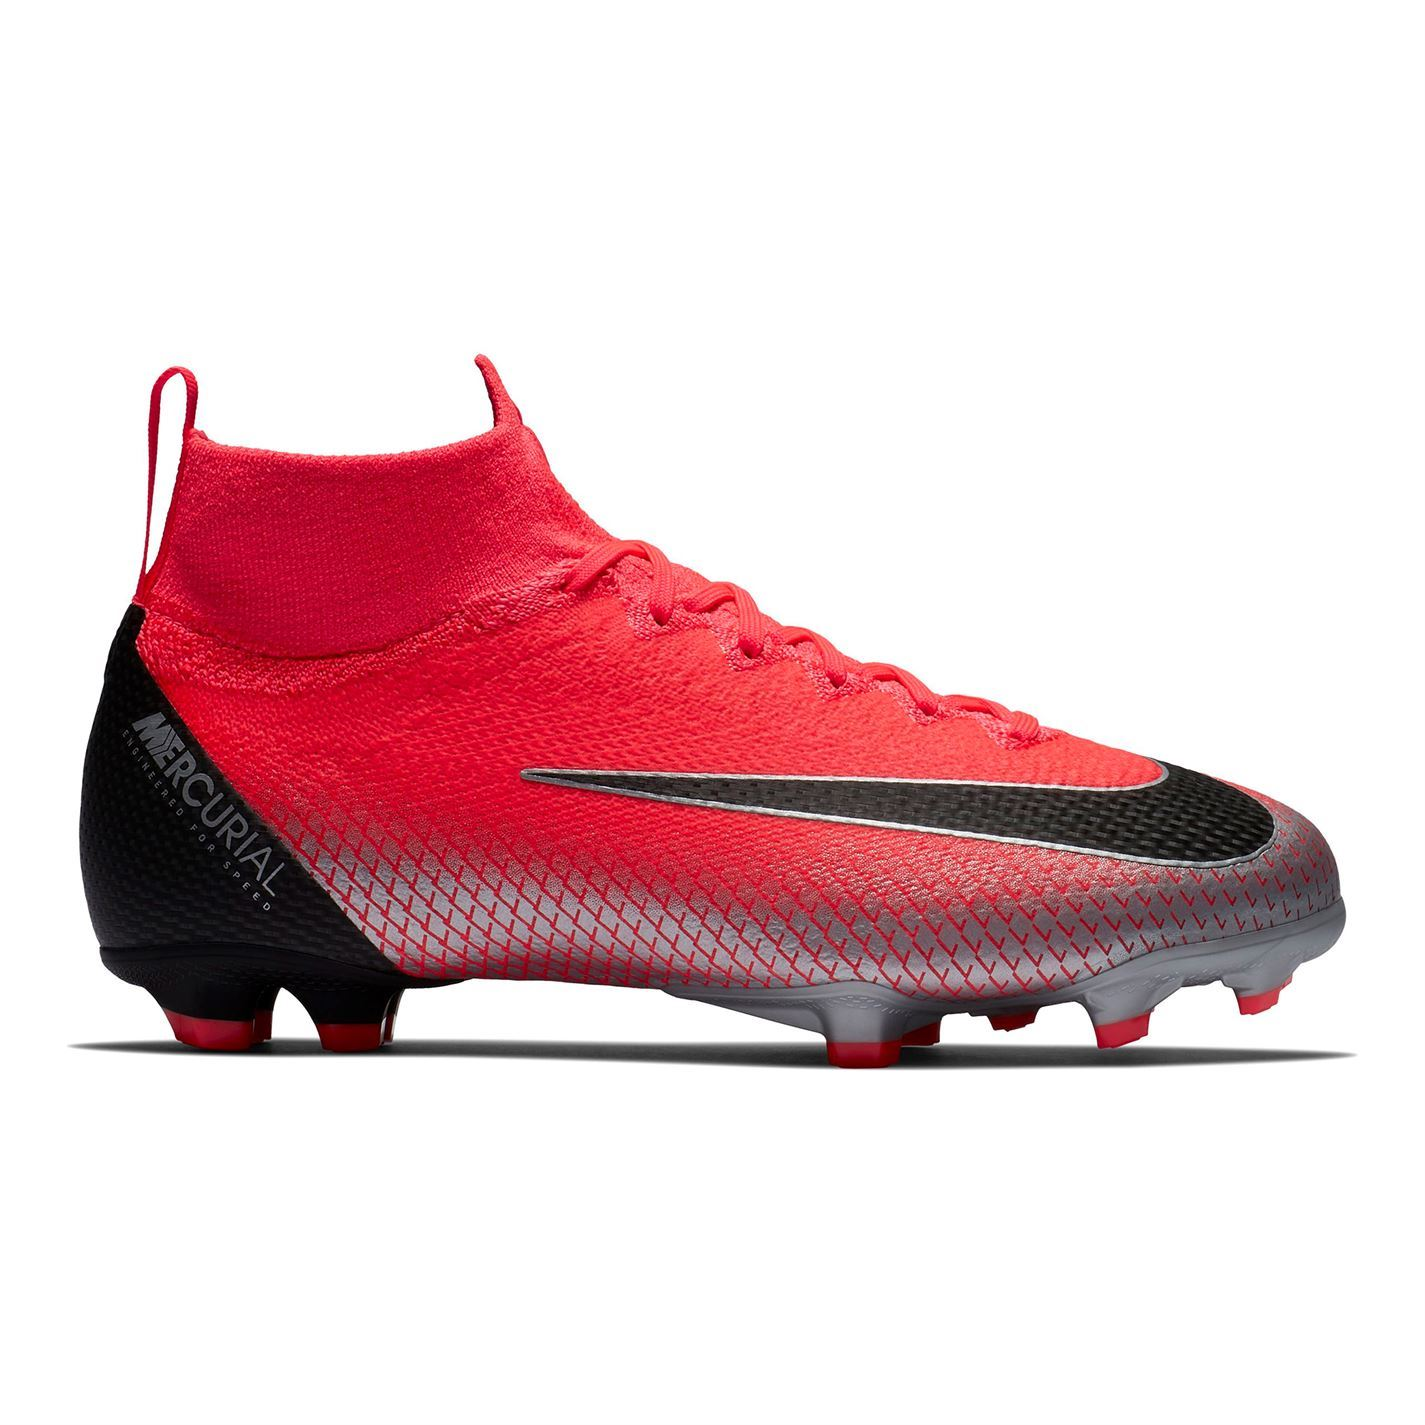 9636a60abdd Nike Mercurial Superfly Elite CR7 FG Football Boots Juniors Soccer ...